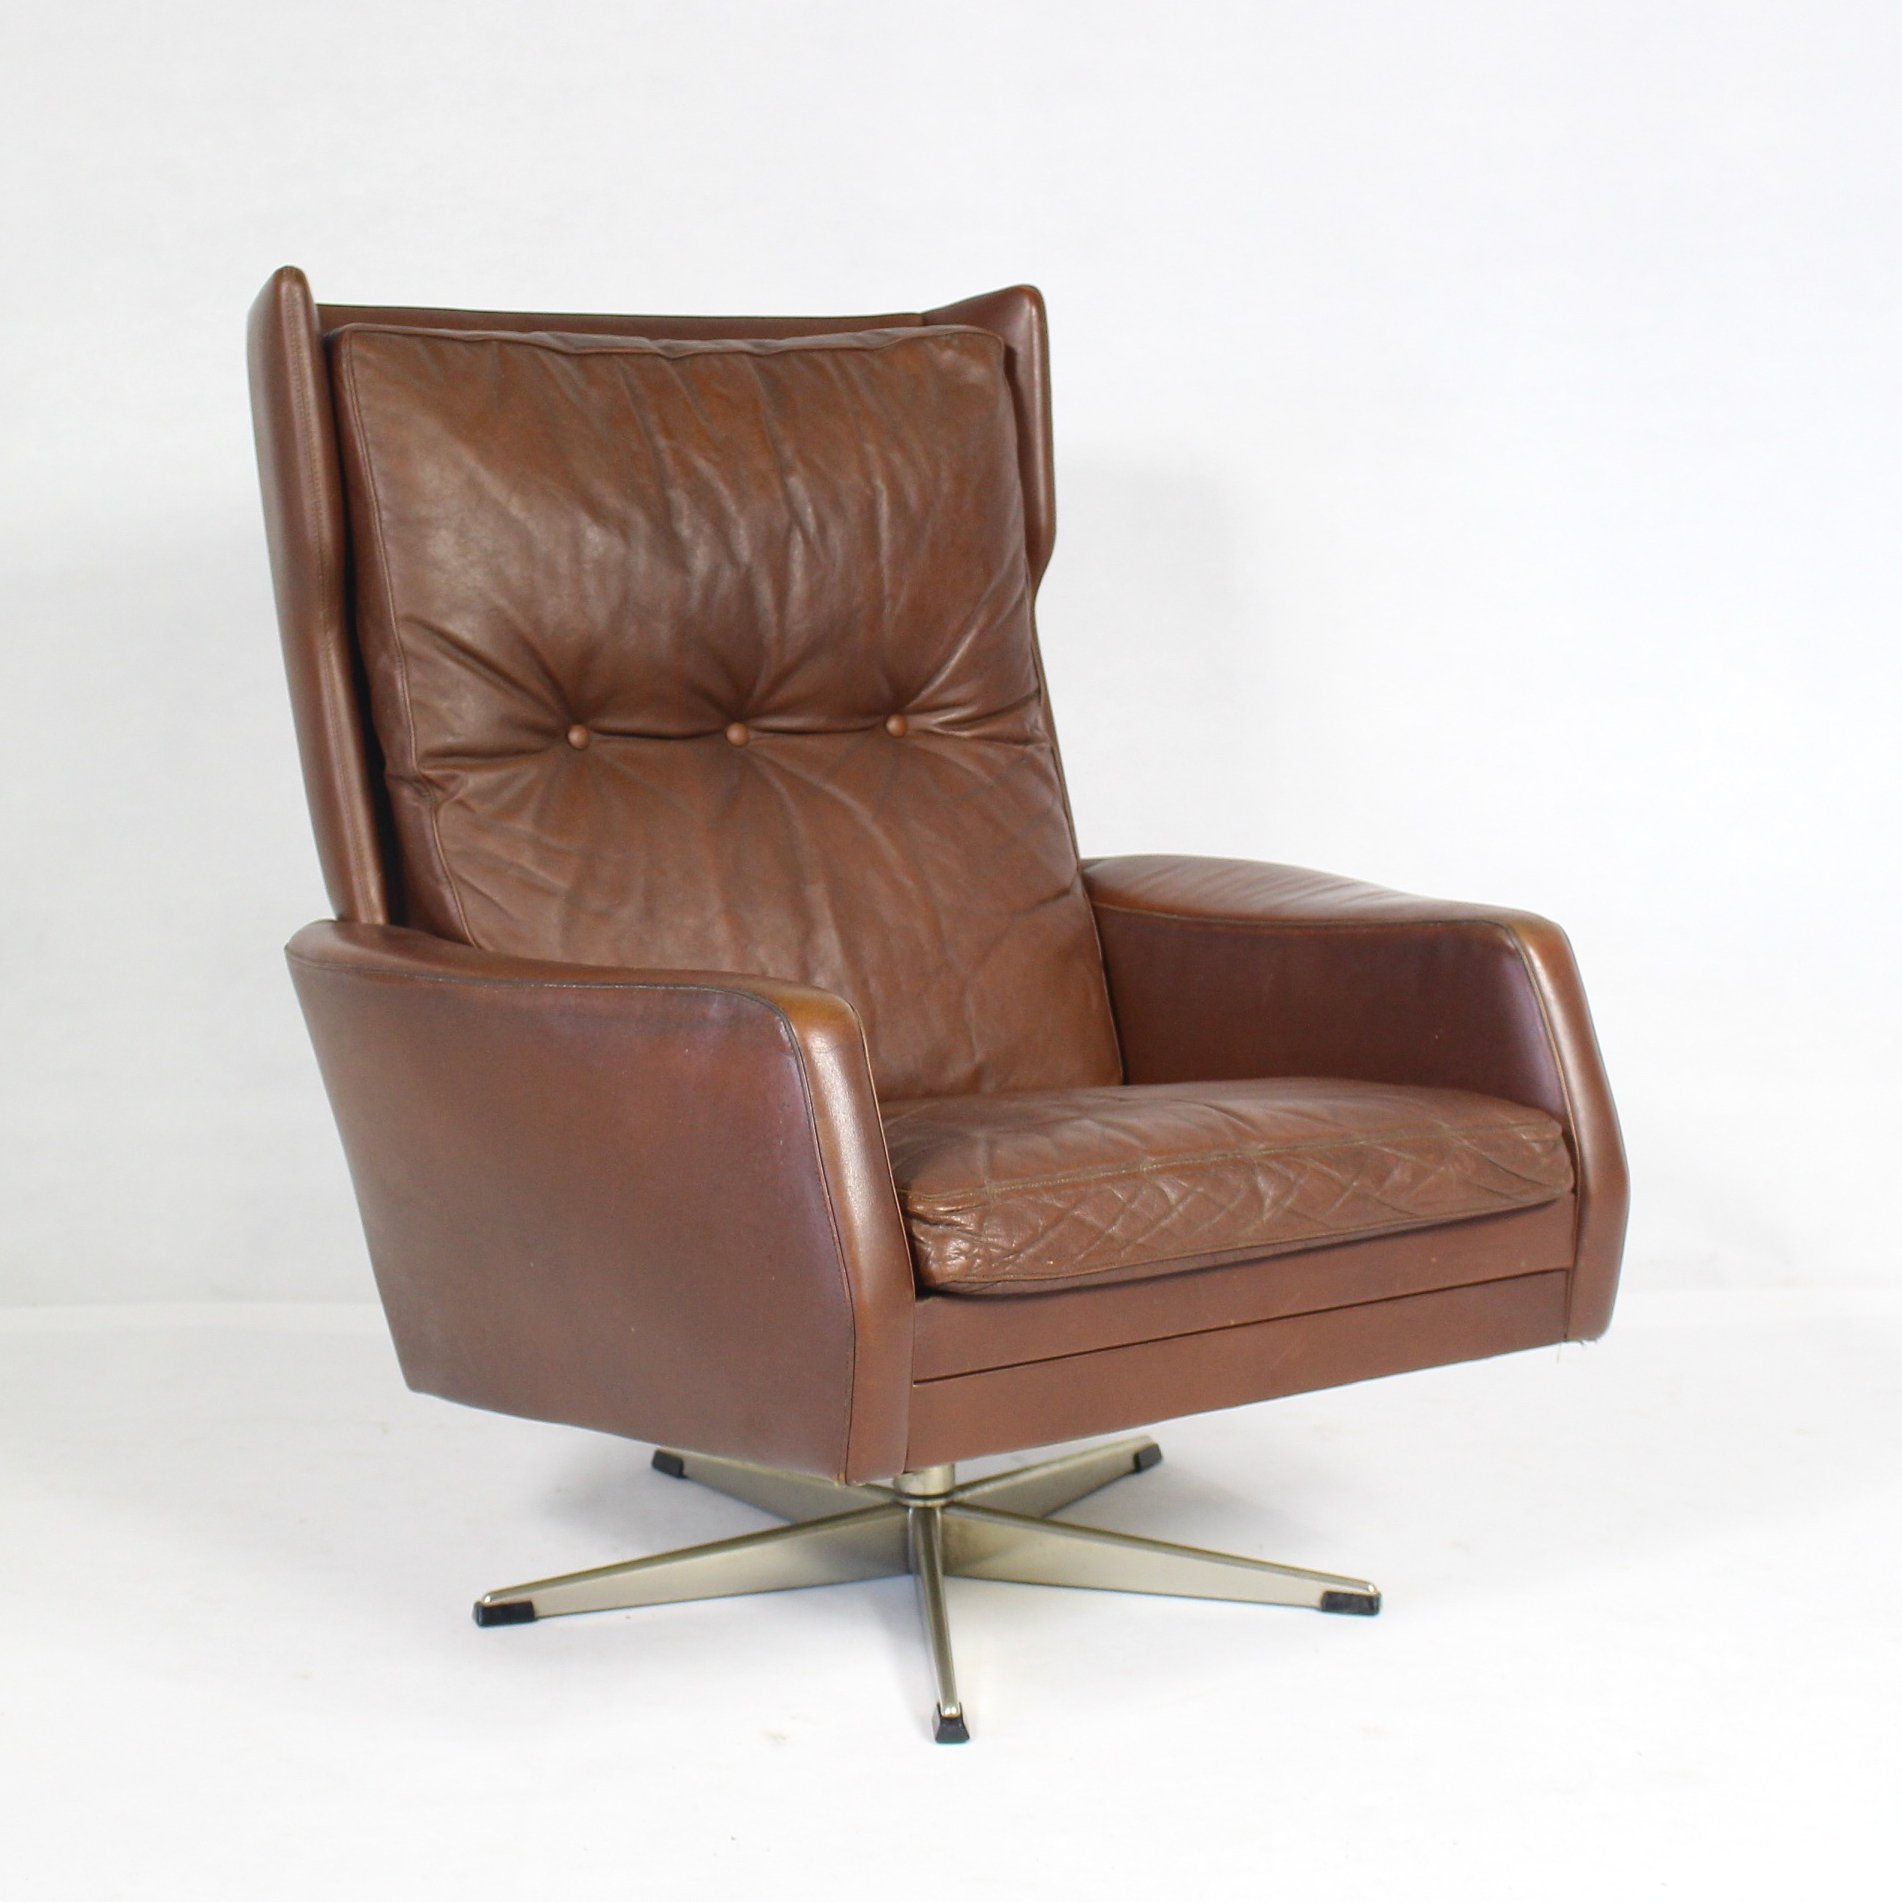 Brown Leather Swivel Chair 1970s 87941